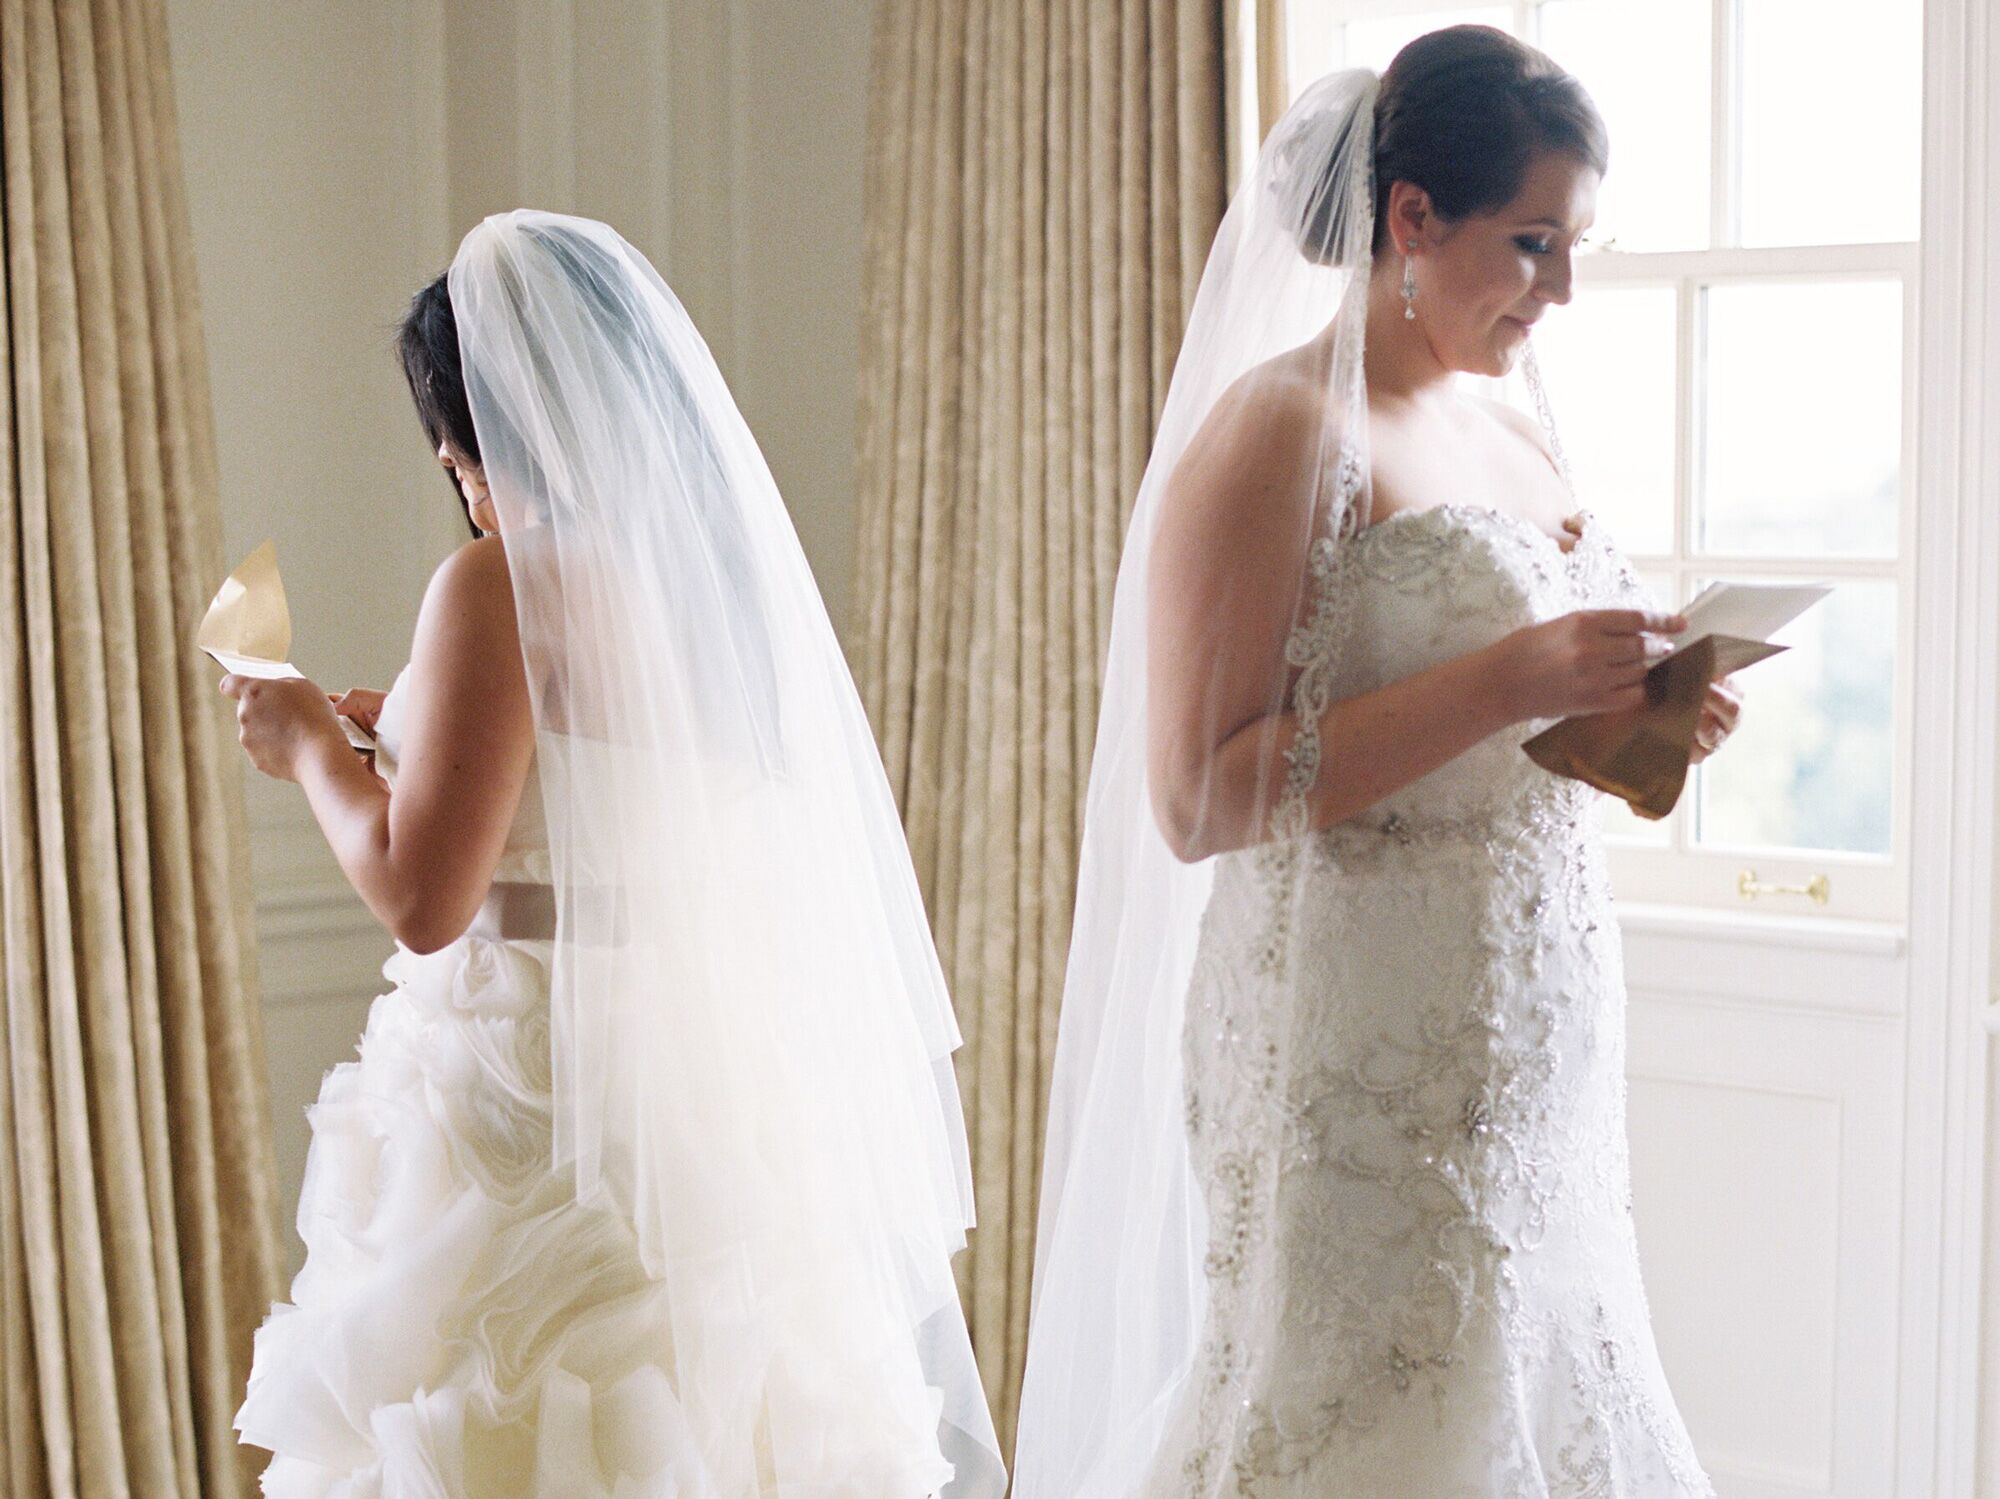 Should You Get A Wedding Gift For Your Bride Or Groom